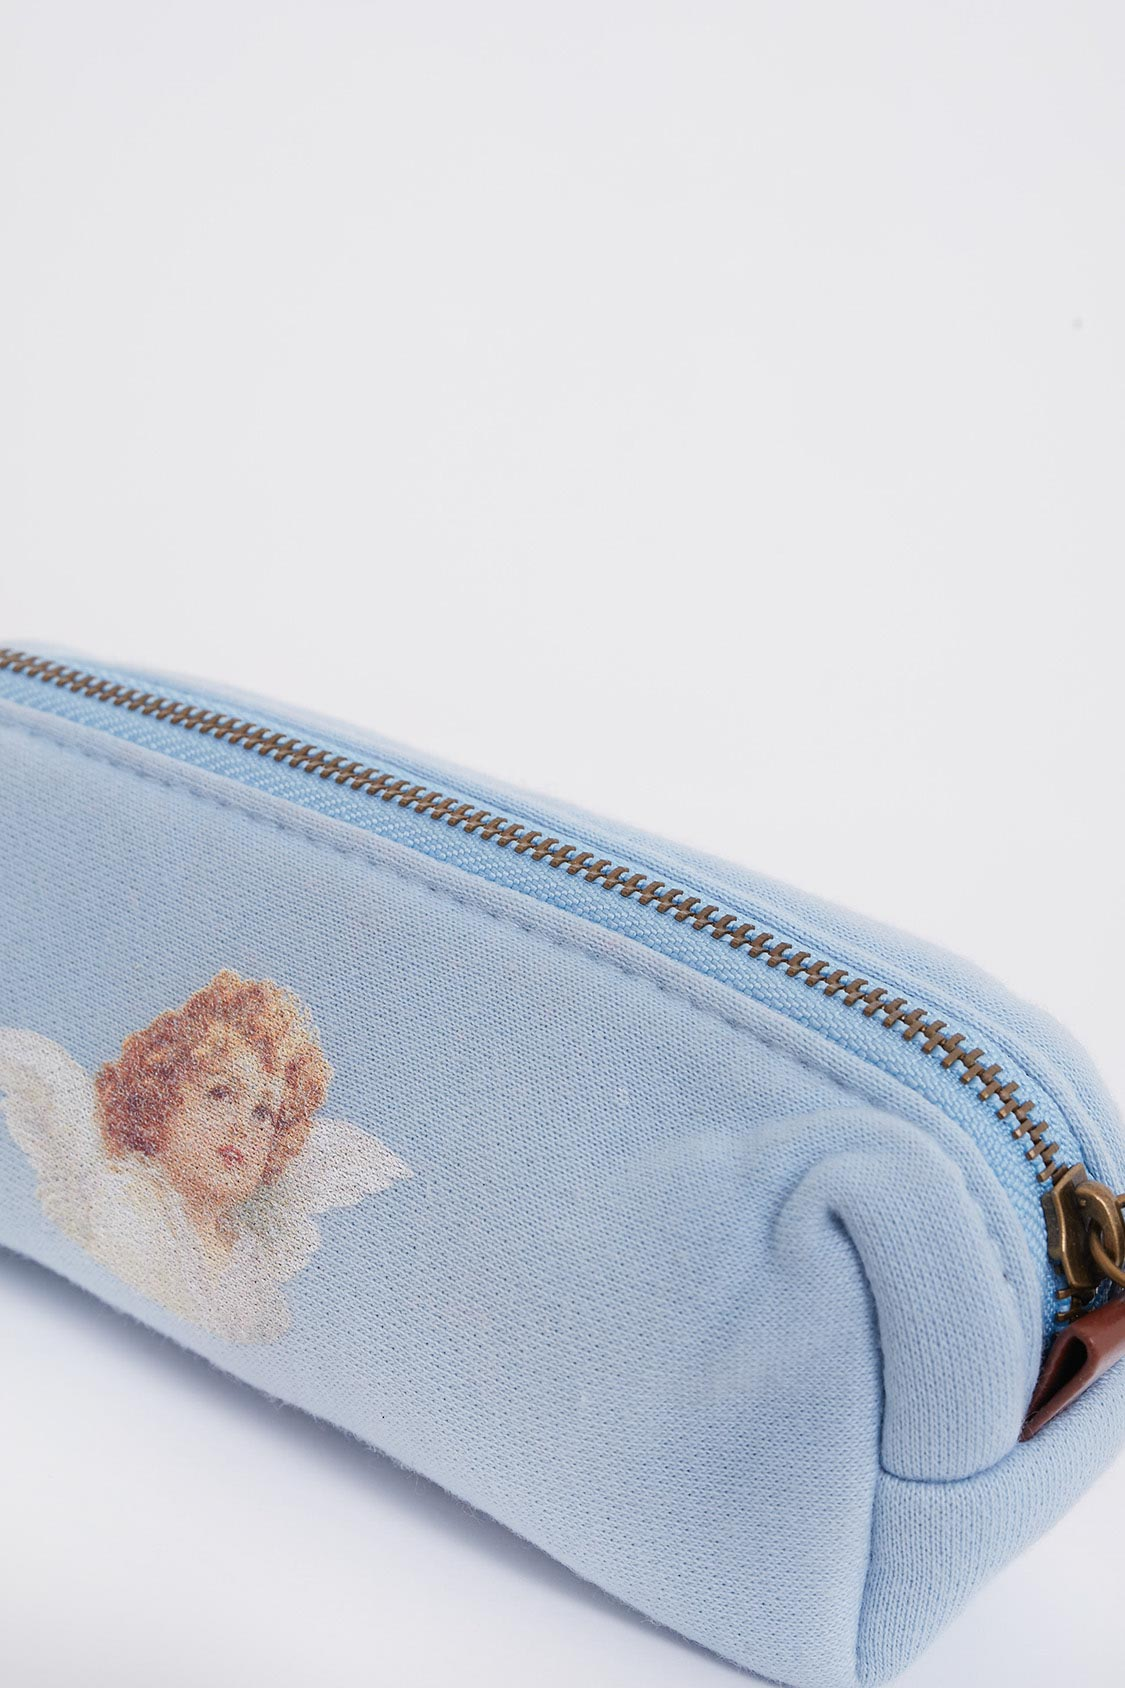 Angel printed pencil case